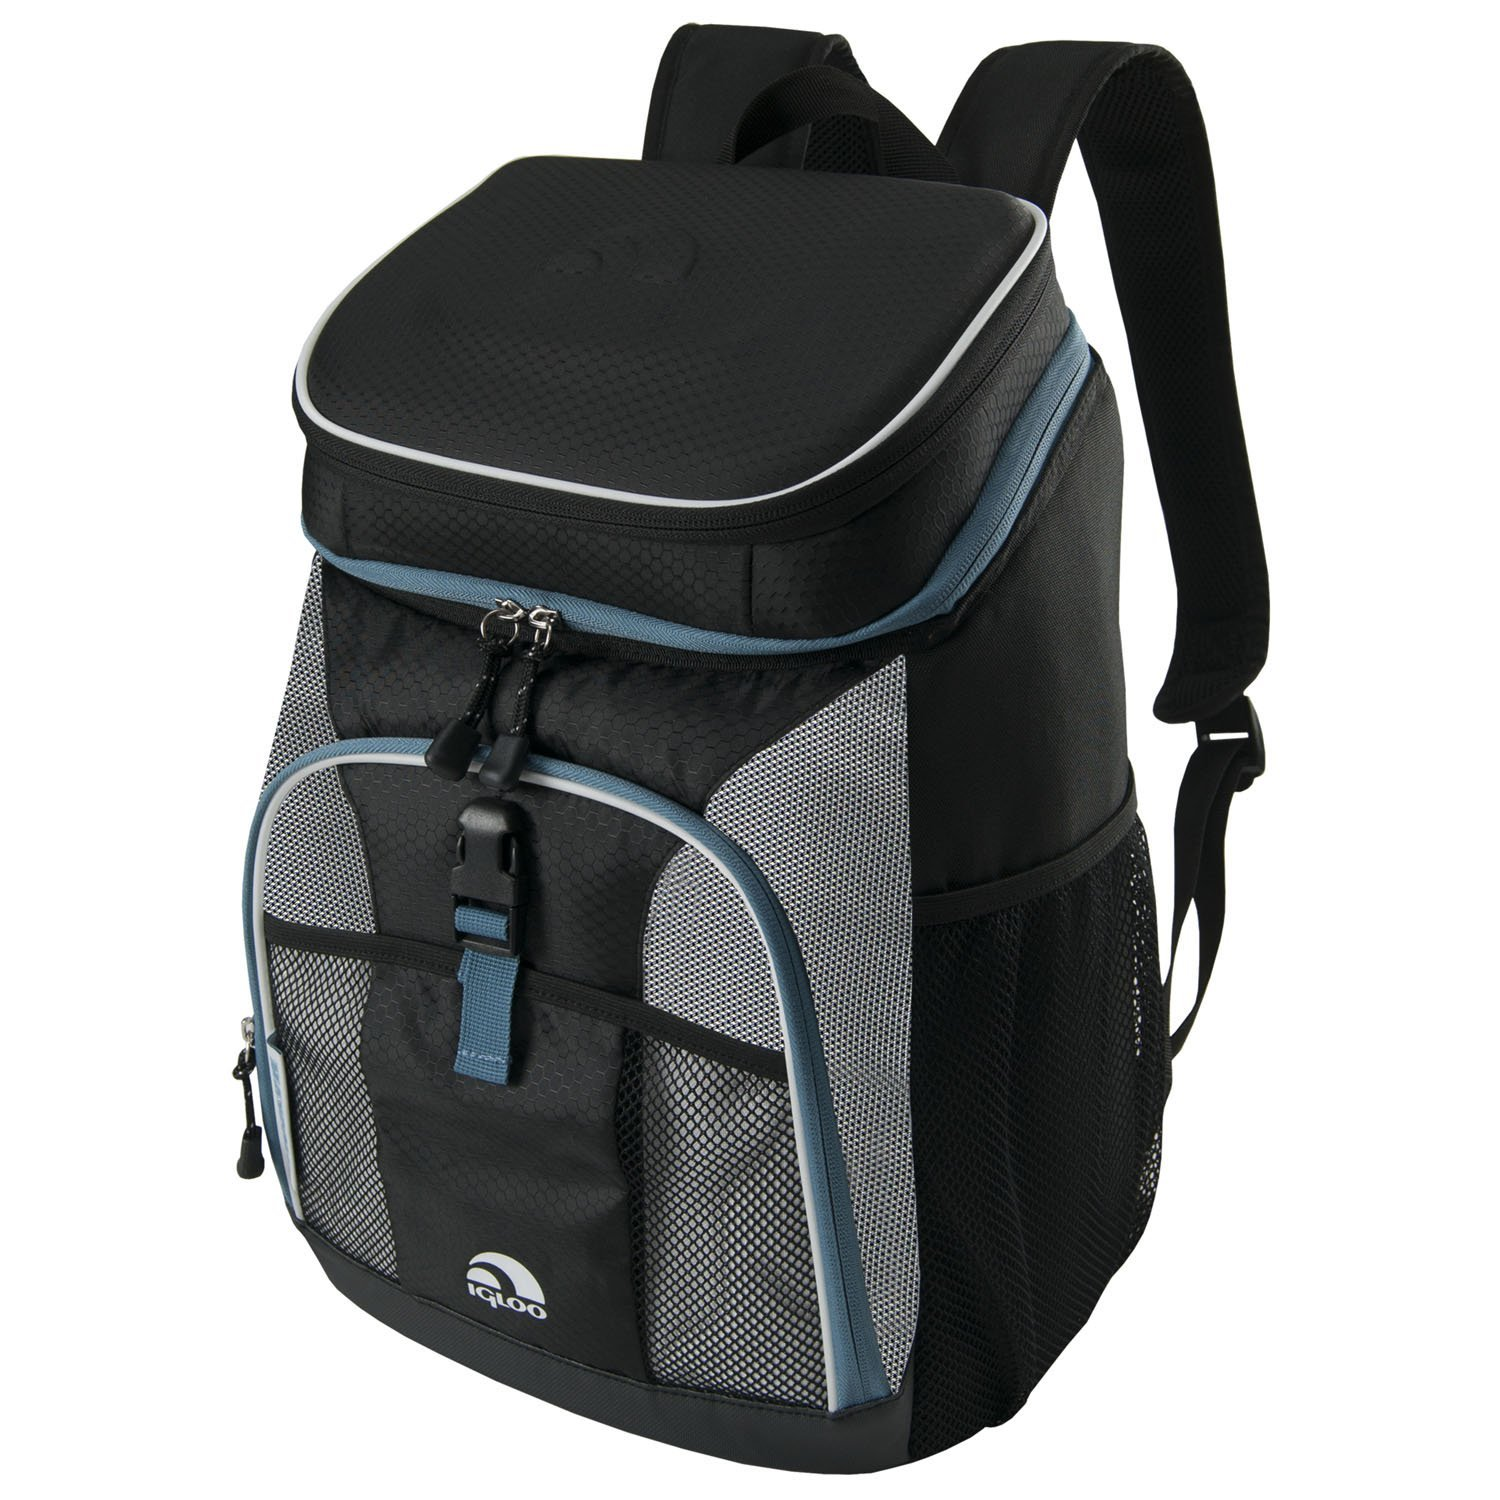 Igloo MaxCold Cooler Backpack – Available as Backpack or Tote